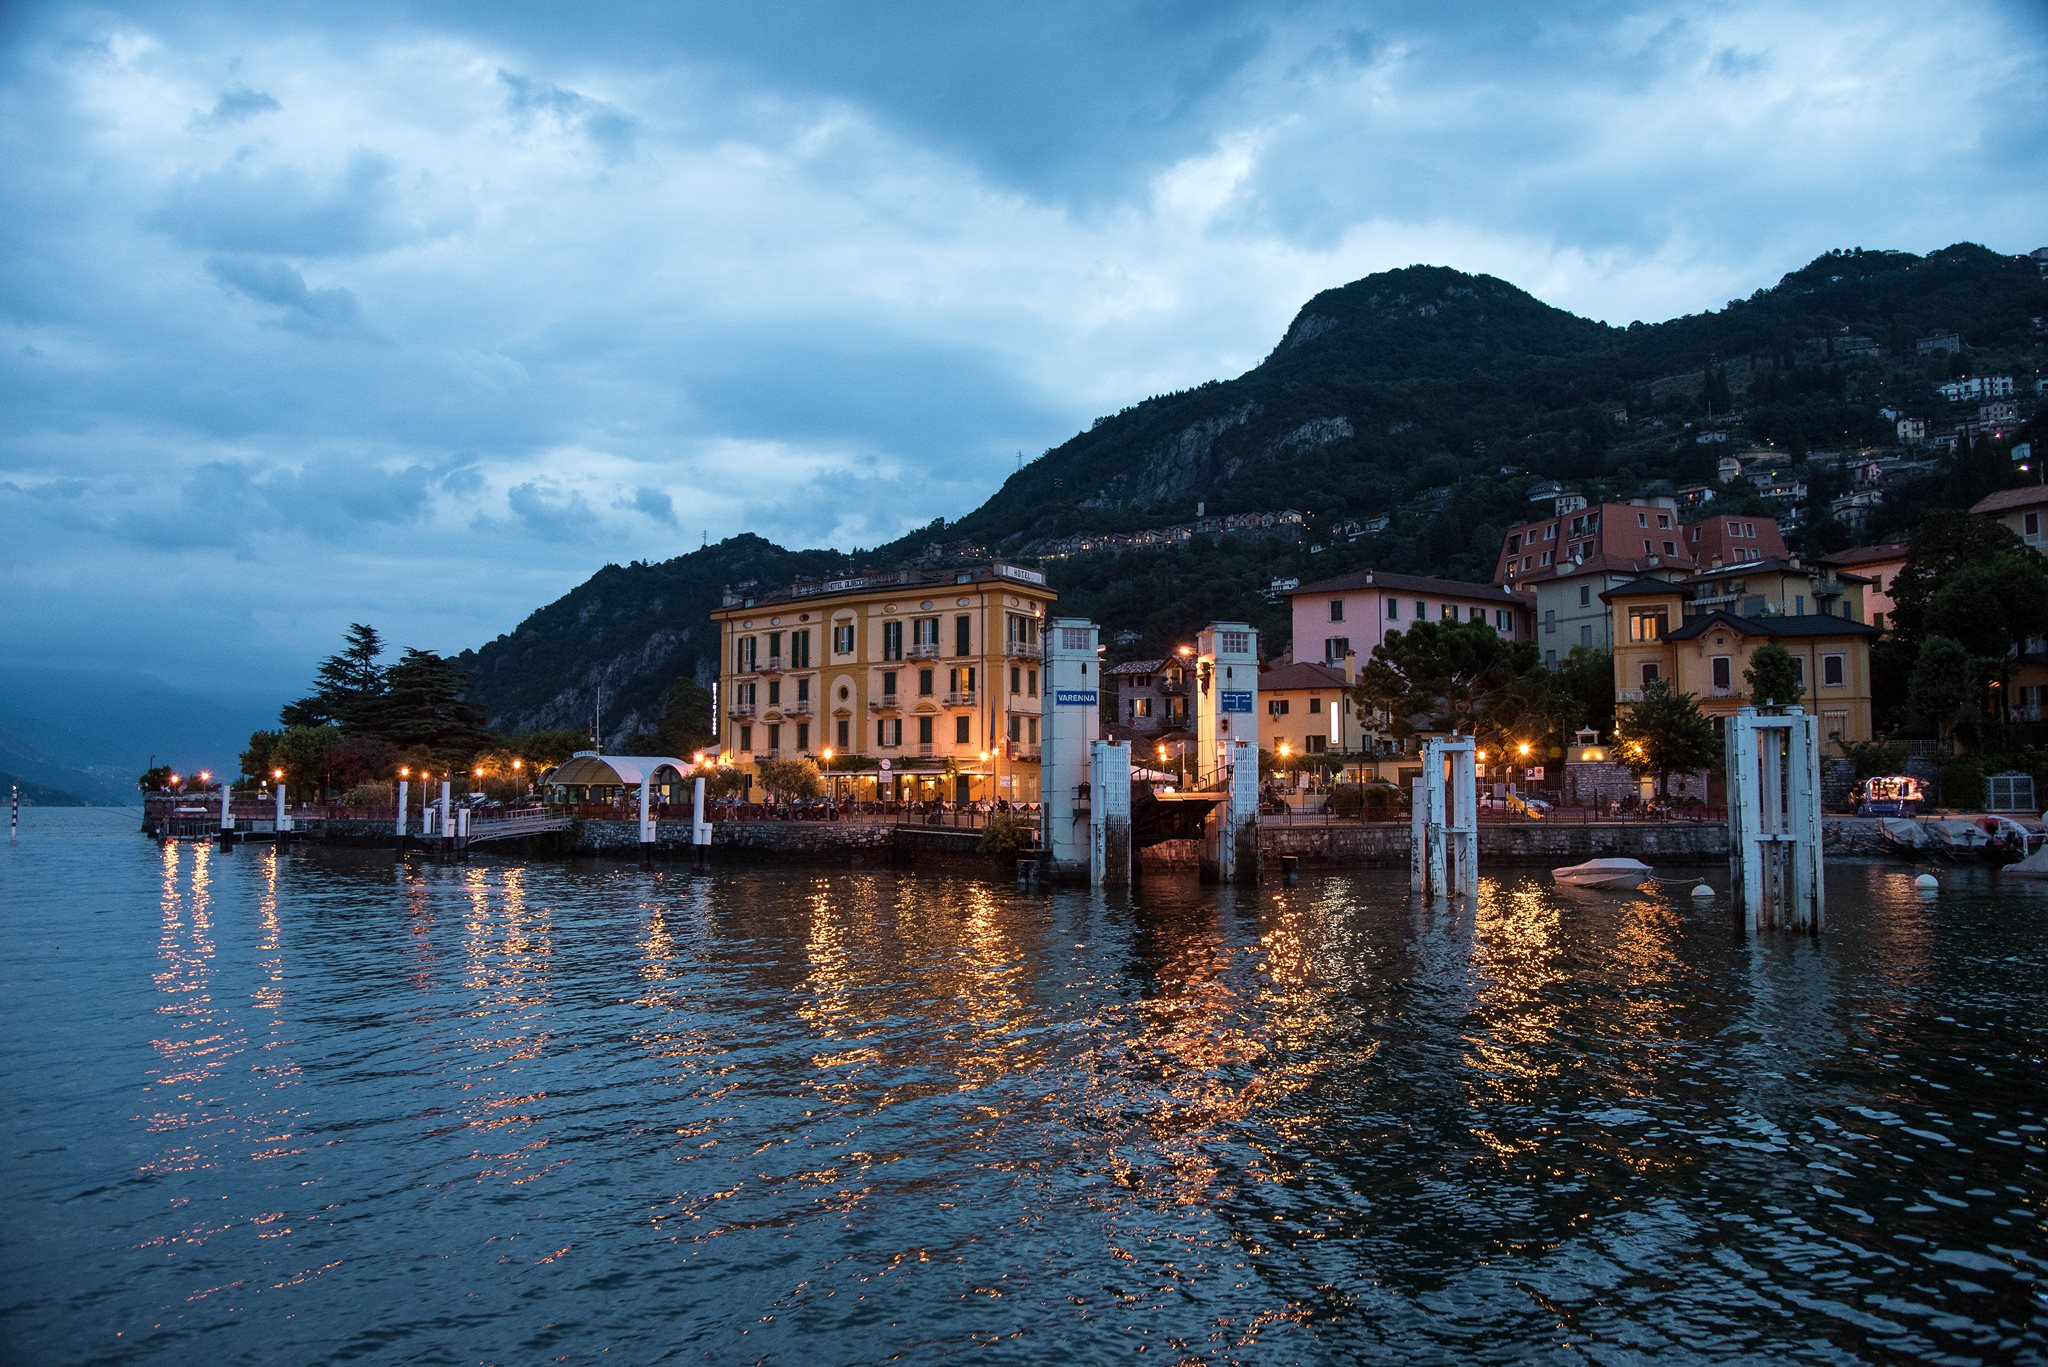 The Lake Como ceremonies are open to only the closest family members and maybe some friends